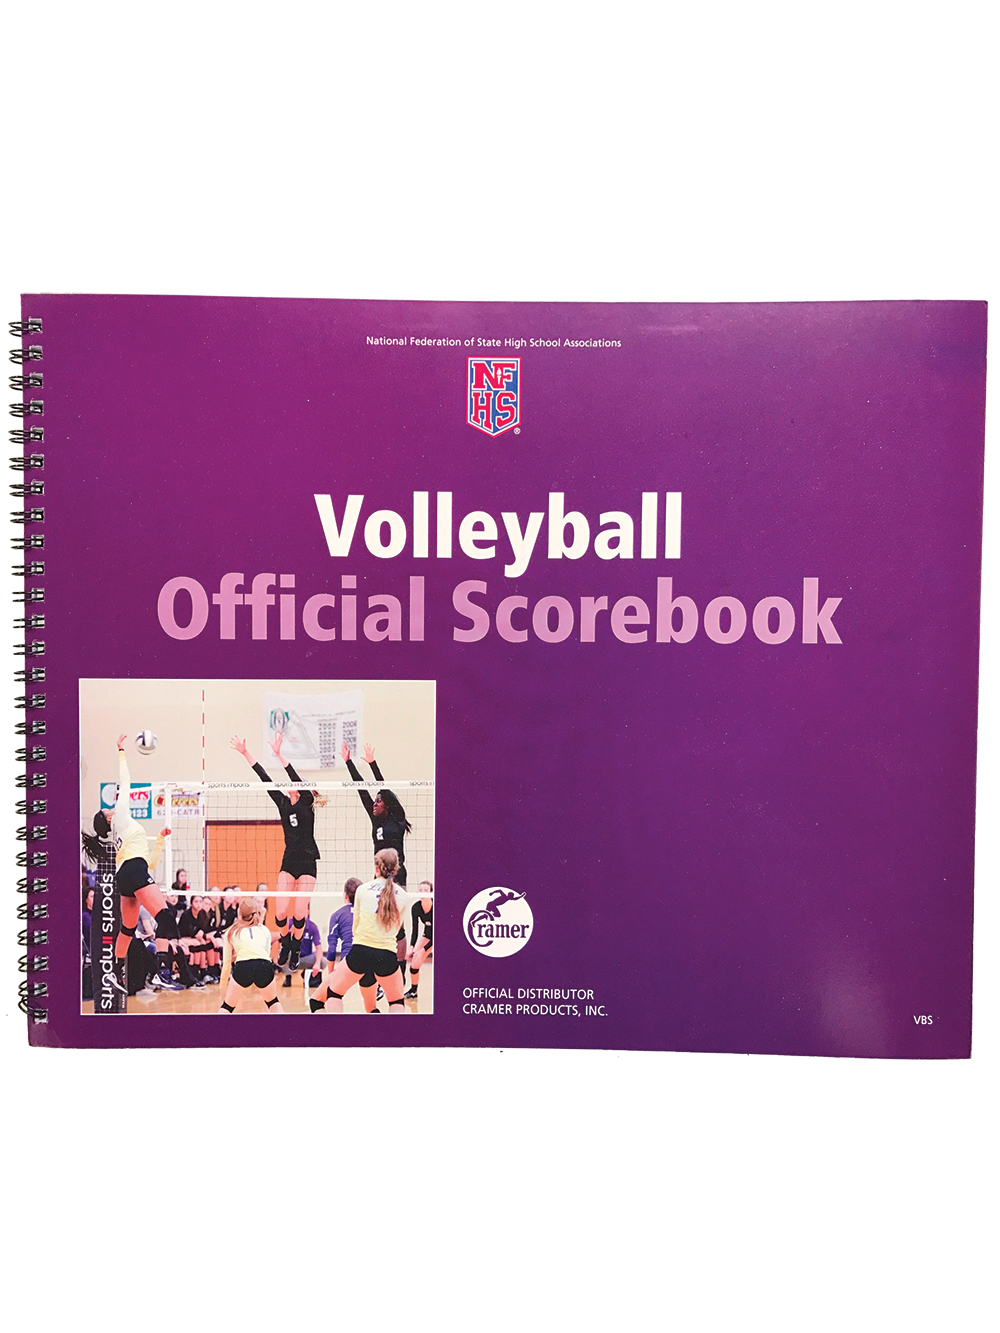 National Federation Volleyball Scorebook Midwest Volleyball Warehouse